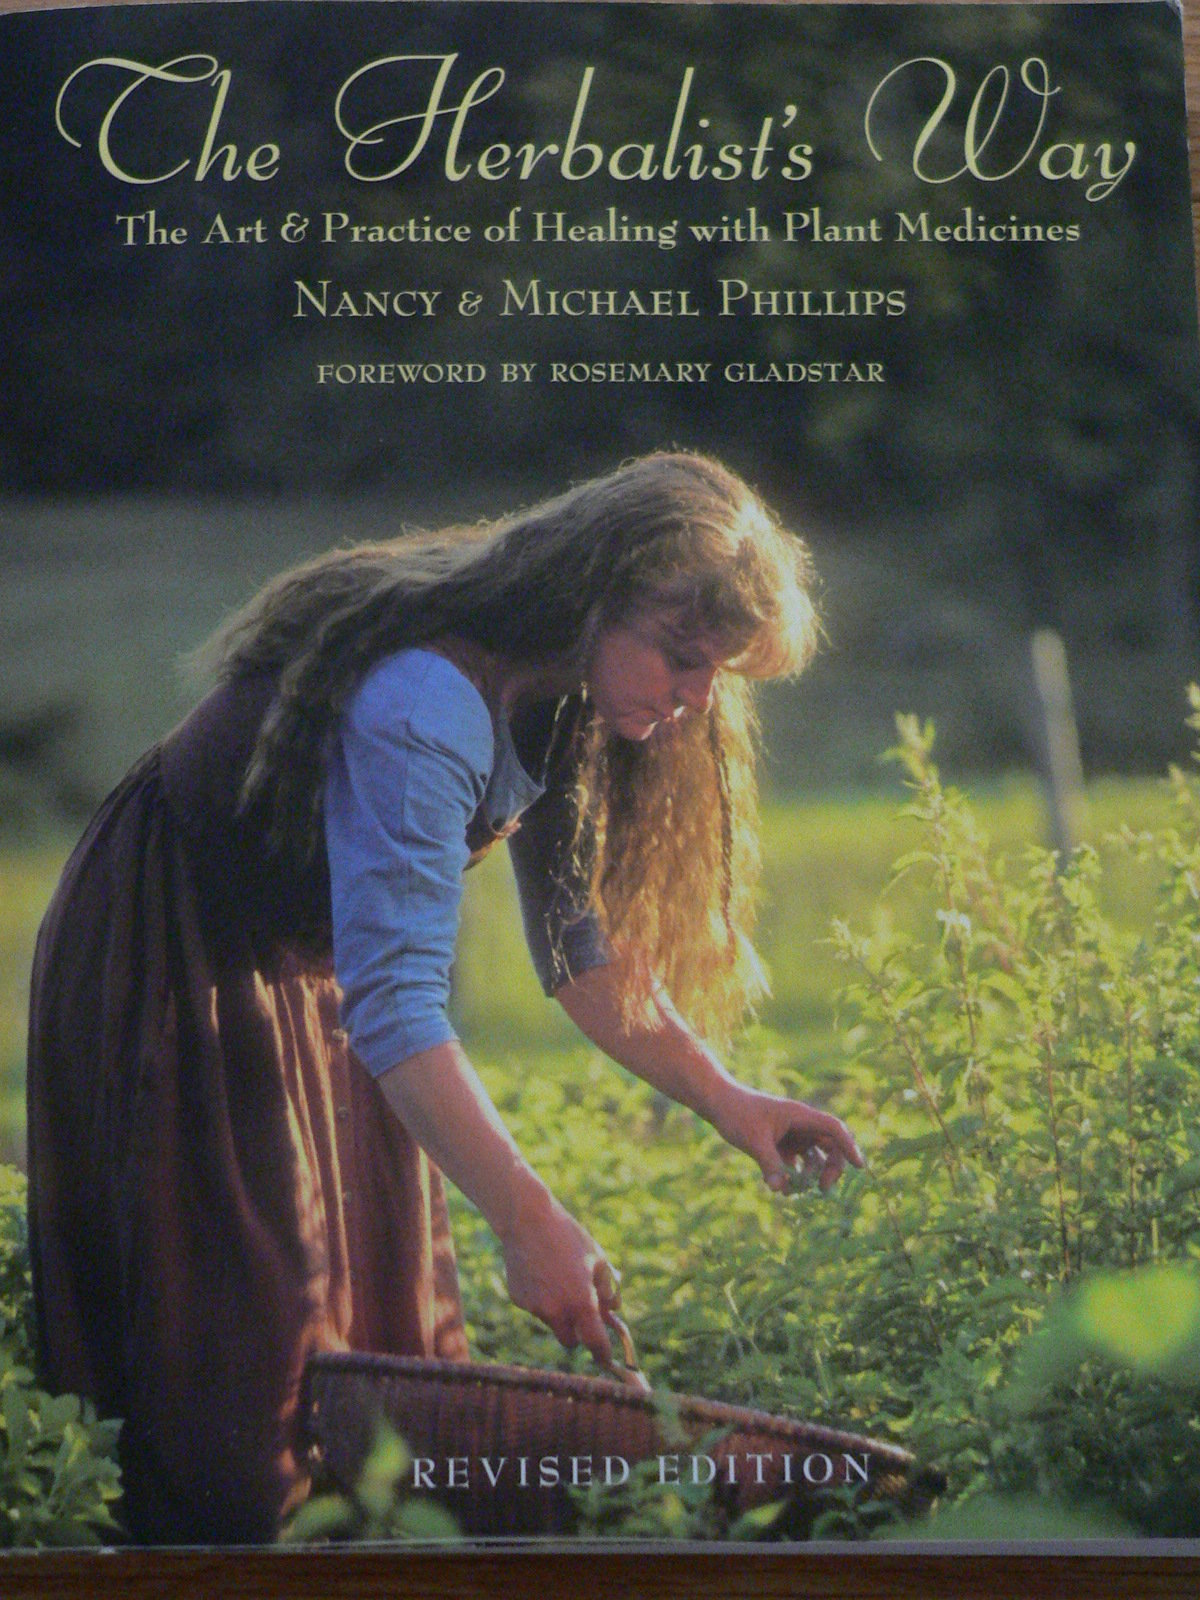 The Herbalist's Way: The Art & Practice of Healing with Plant Medicine 00019